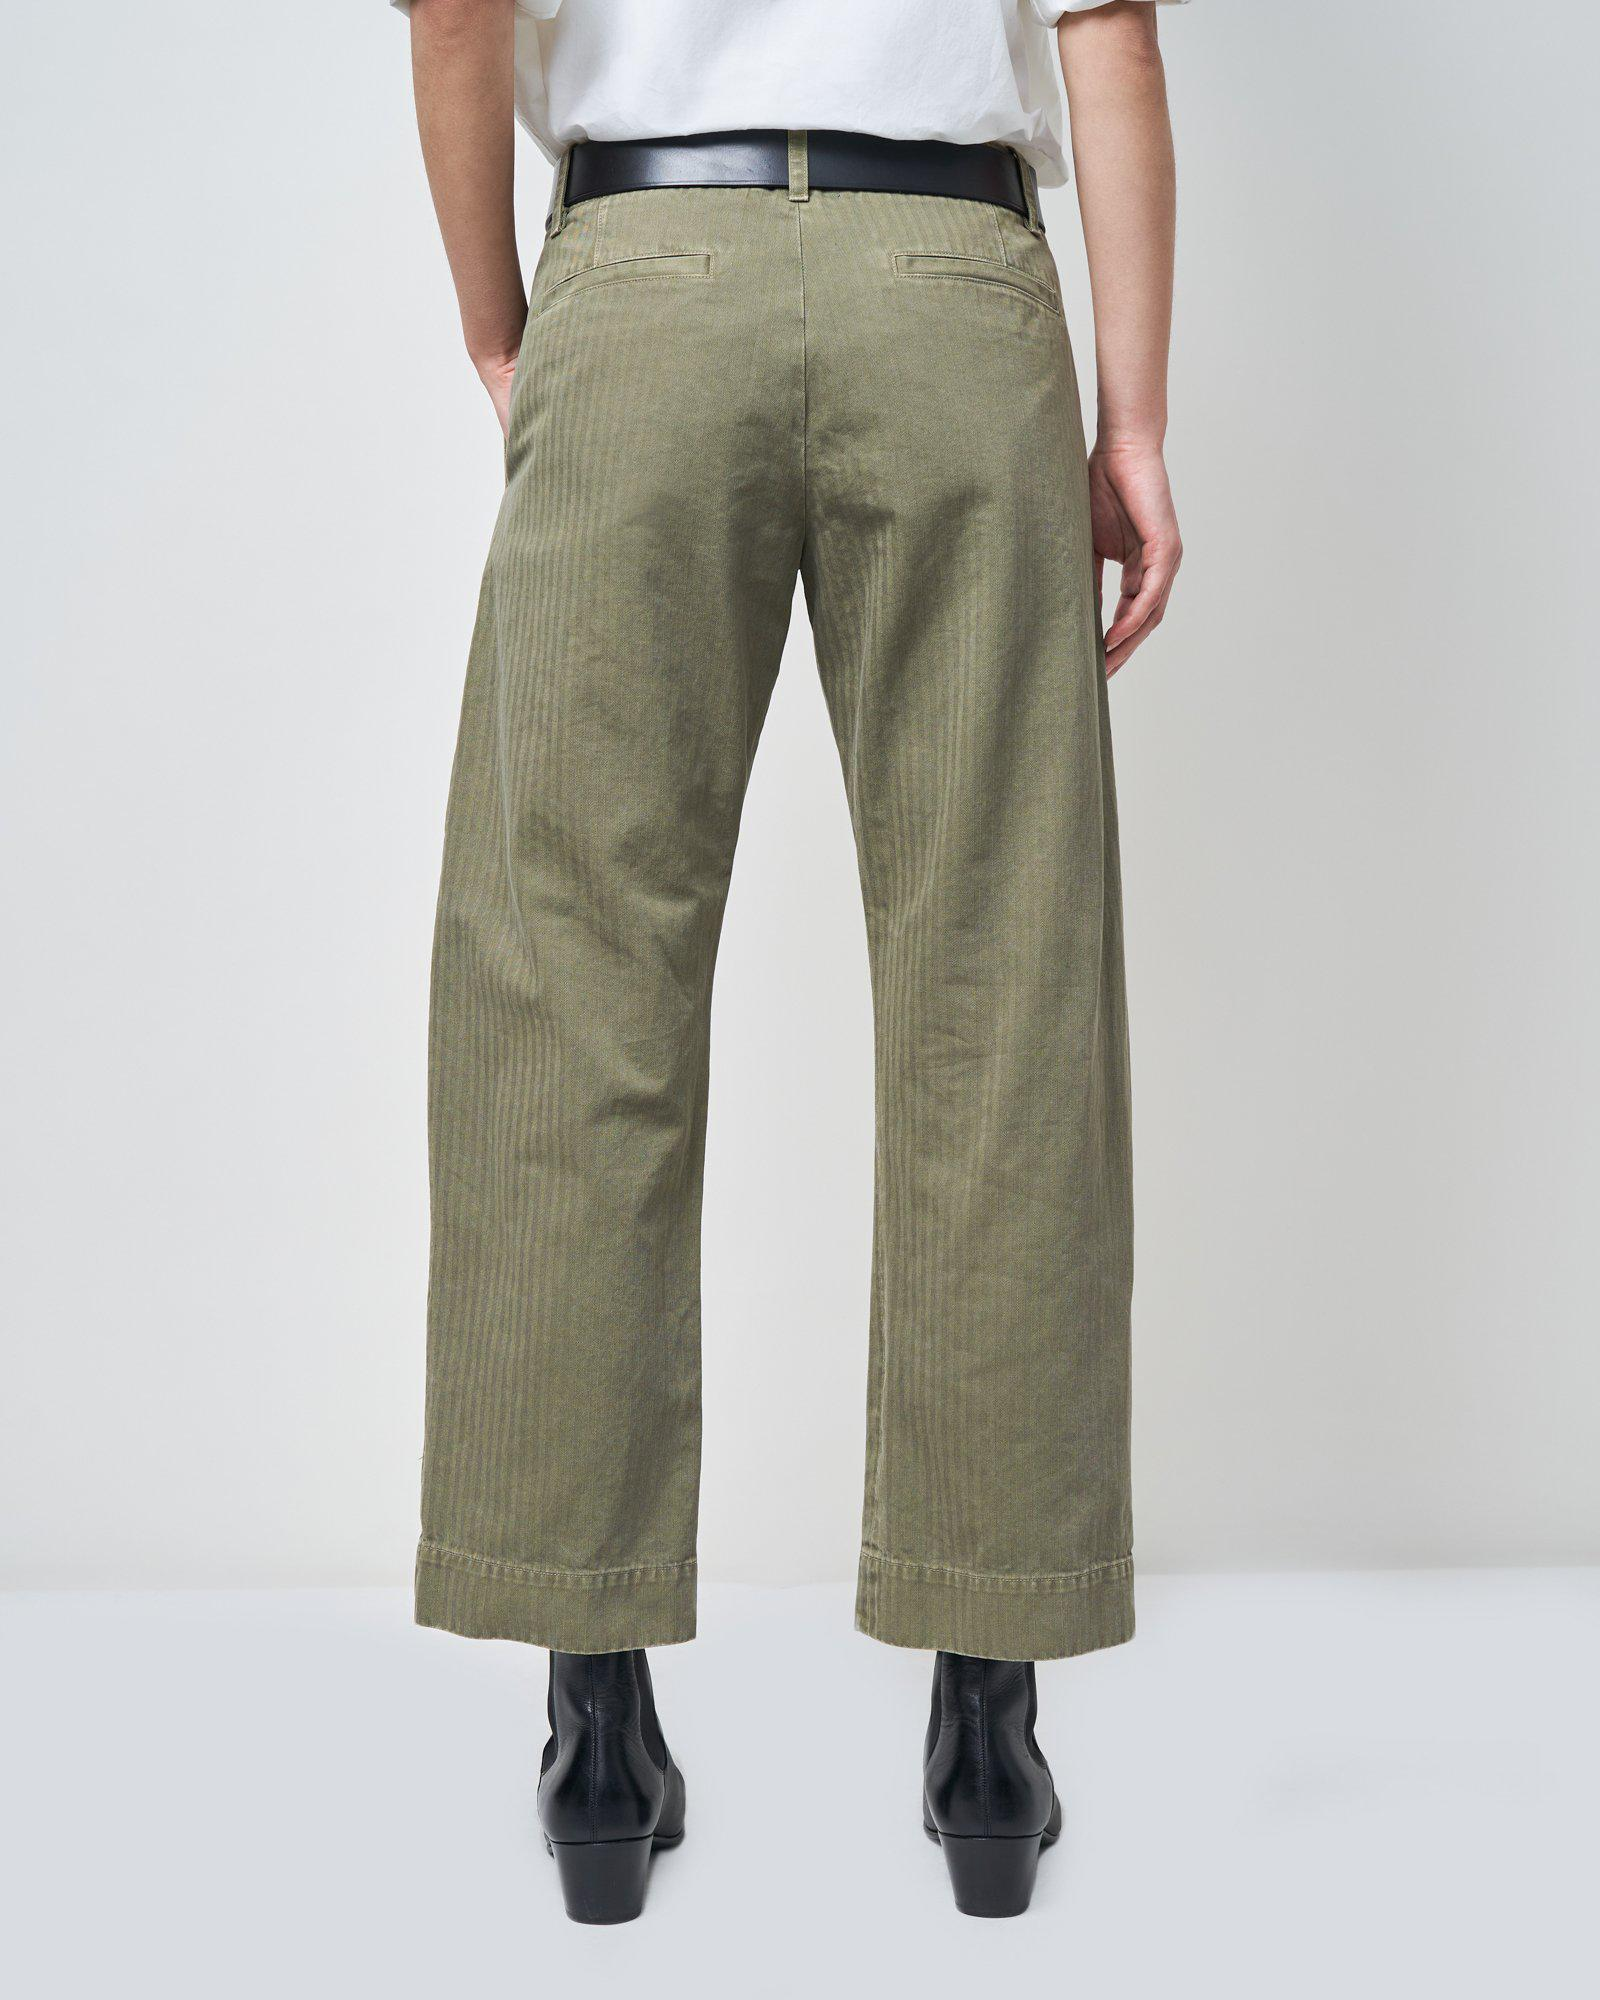 TOMBOY PANT WITH CUFF 3